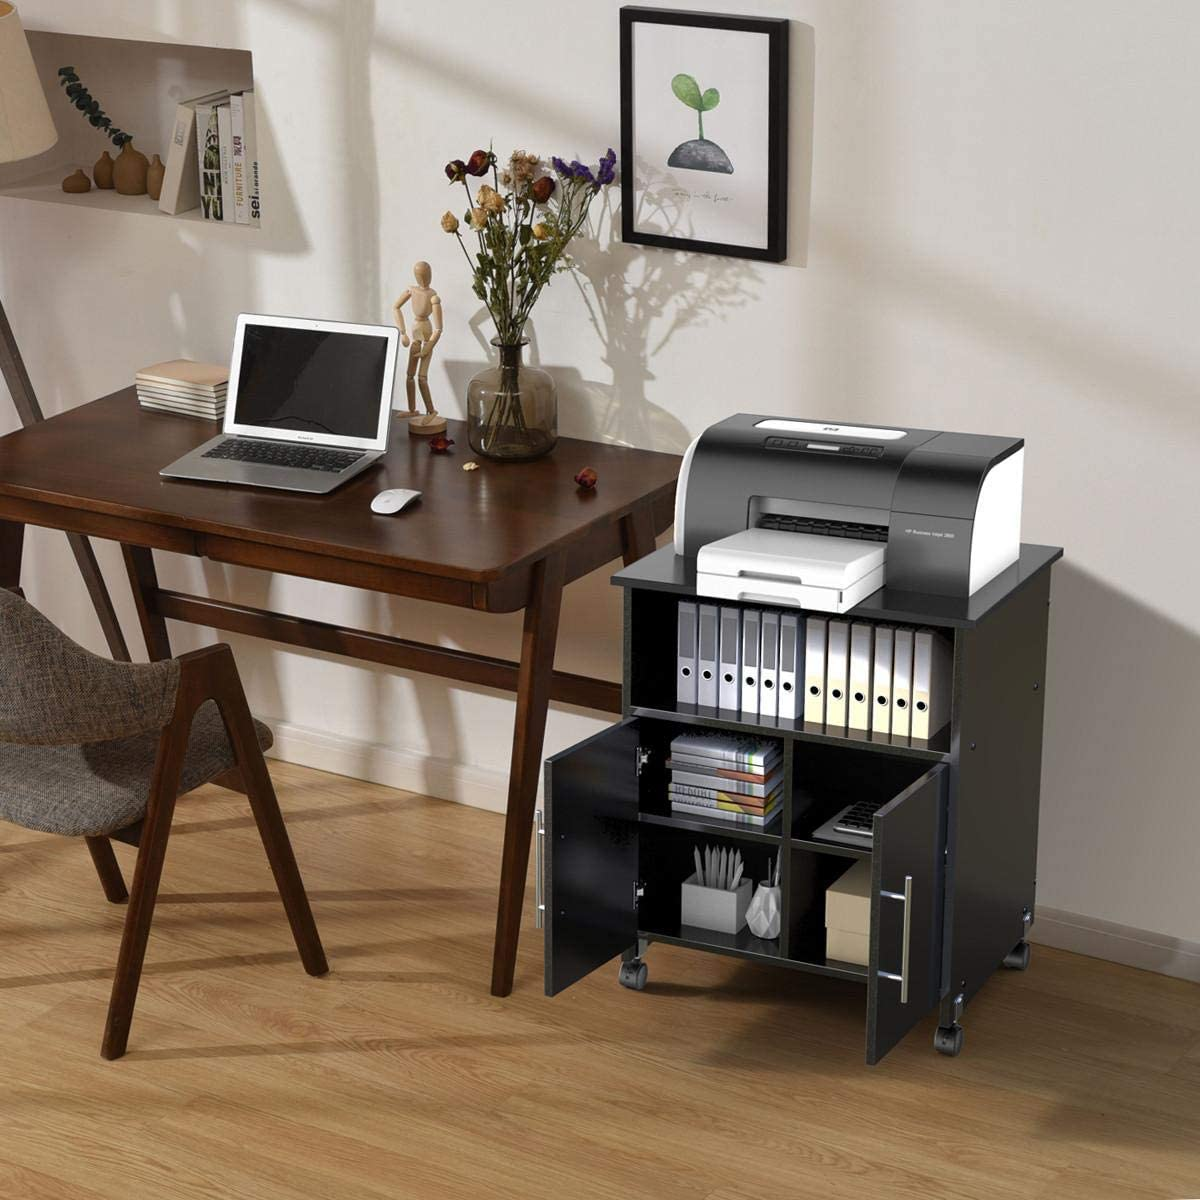 Top 10 Best Printer Stands with Storages in 2020 Reviews | Buyer's Guide